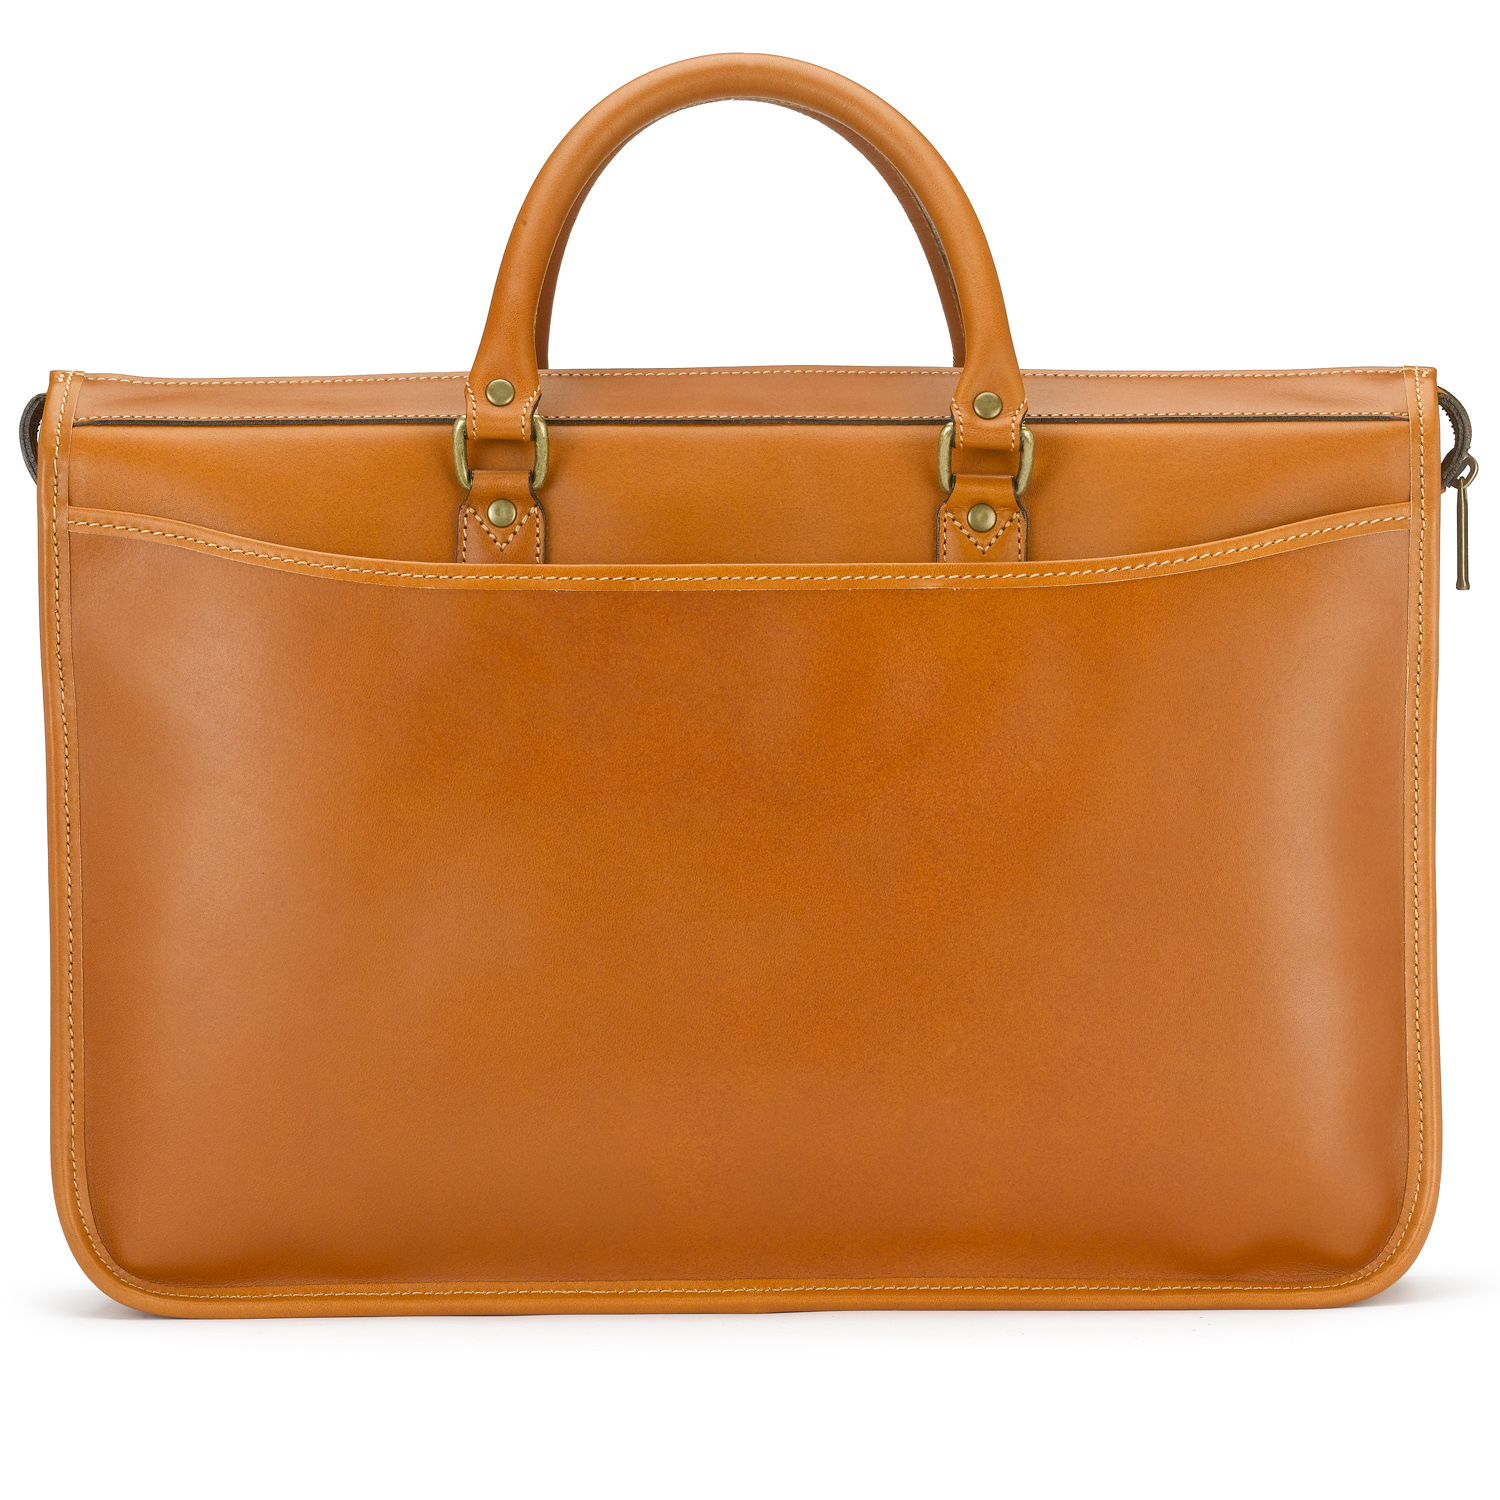 Tusting Marston Leather Briefcase - Large in Tan